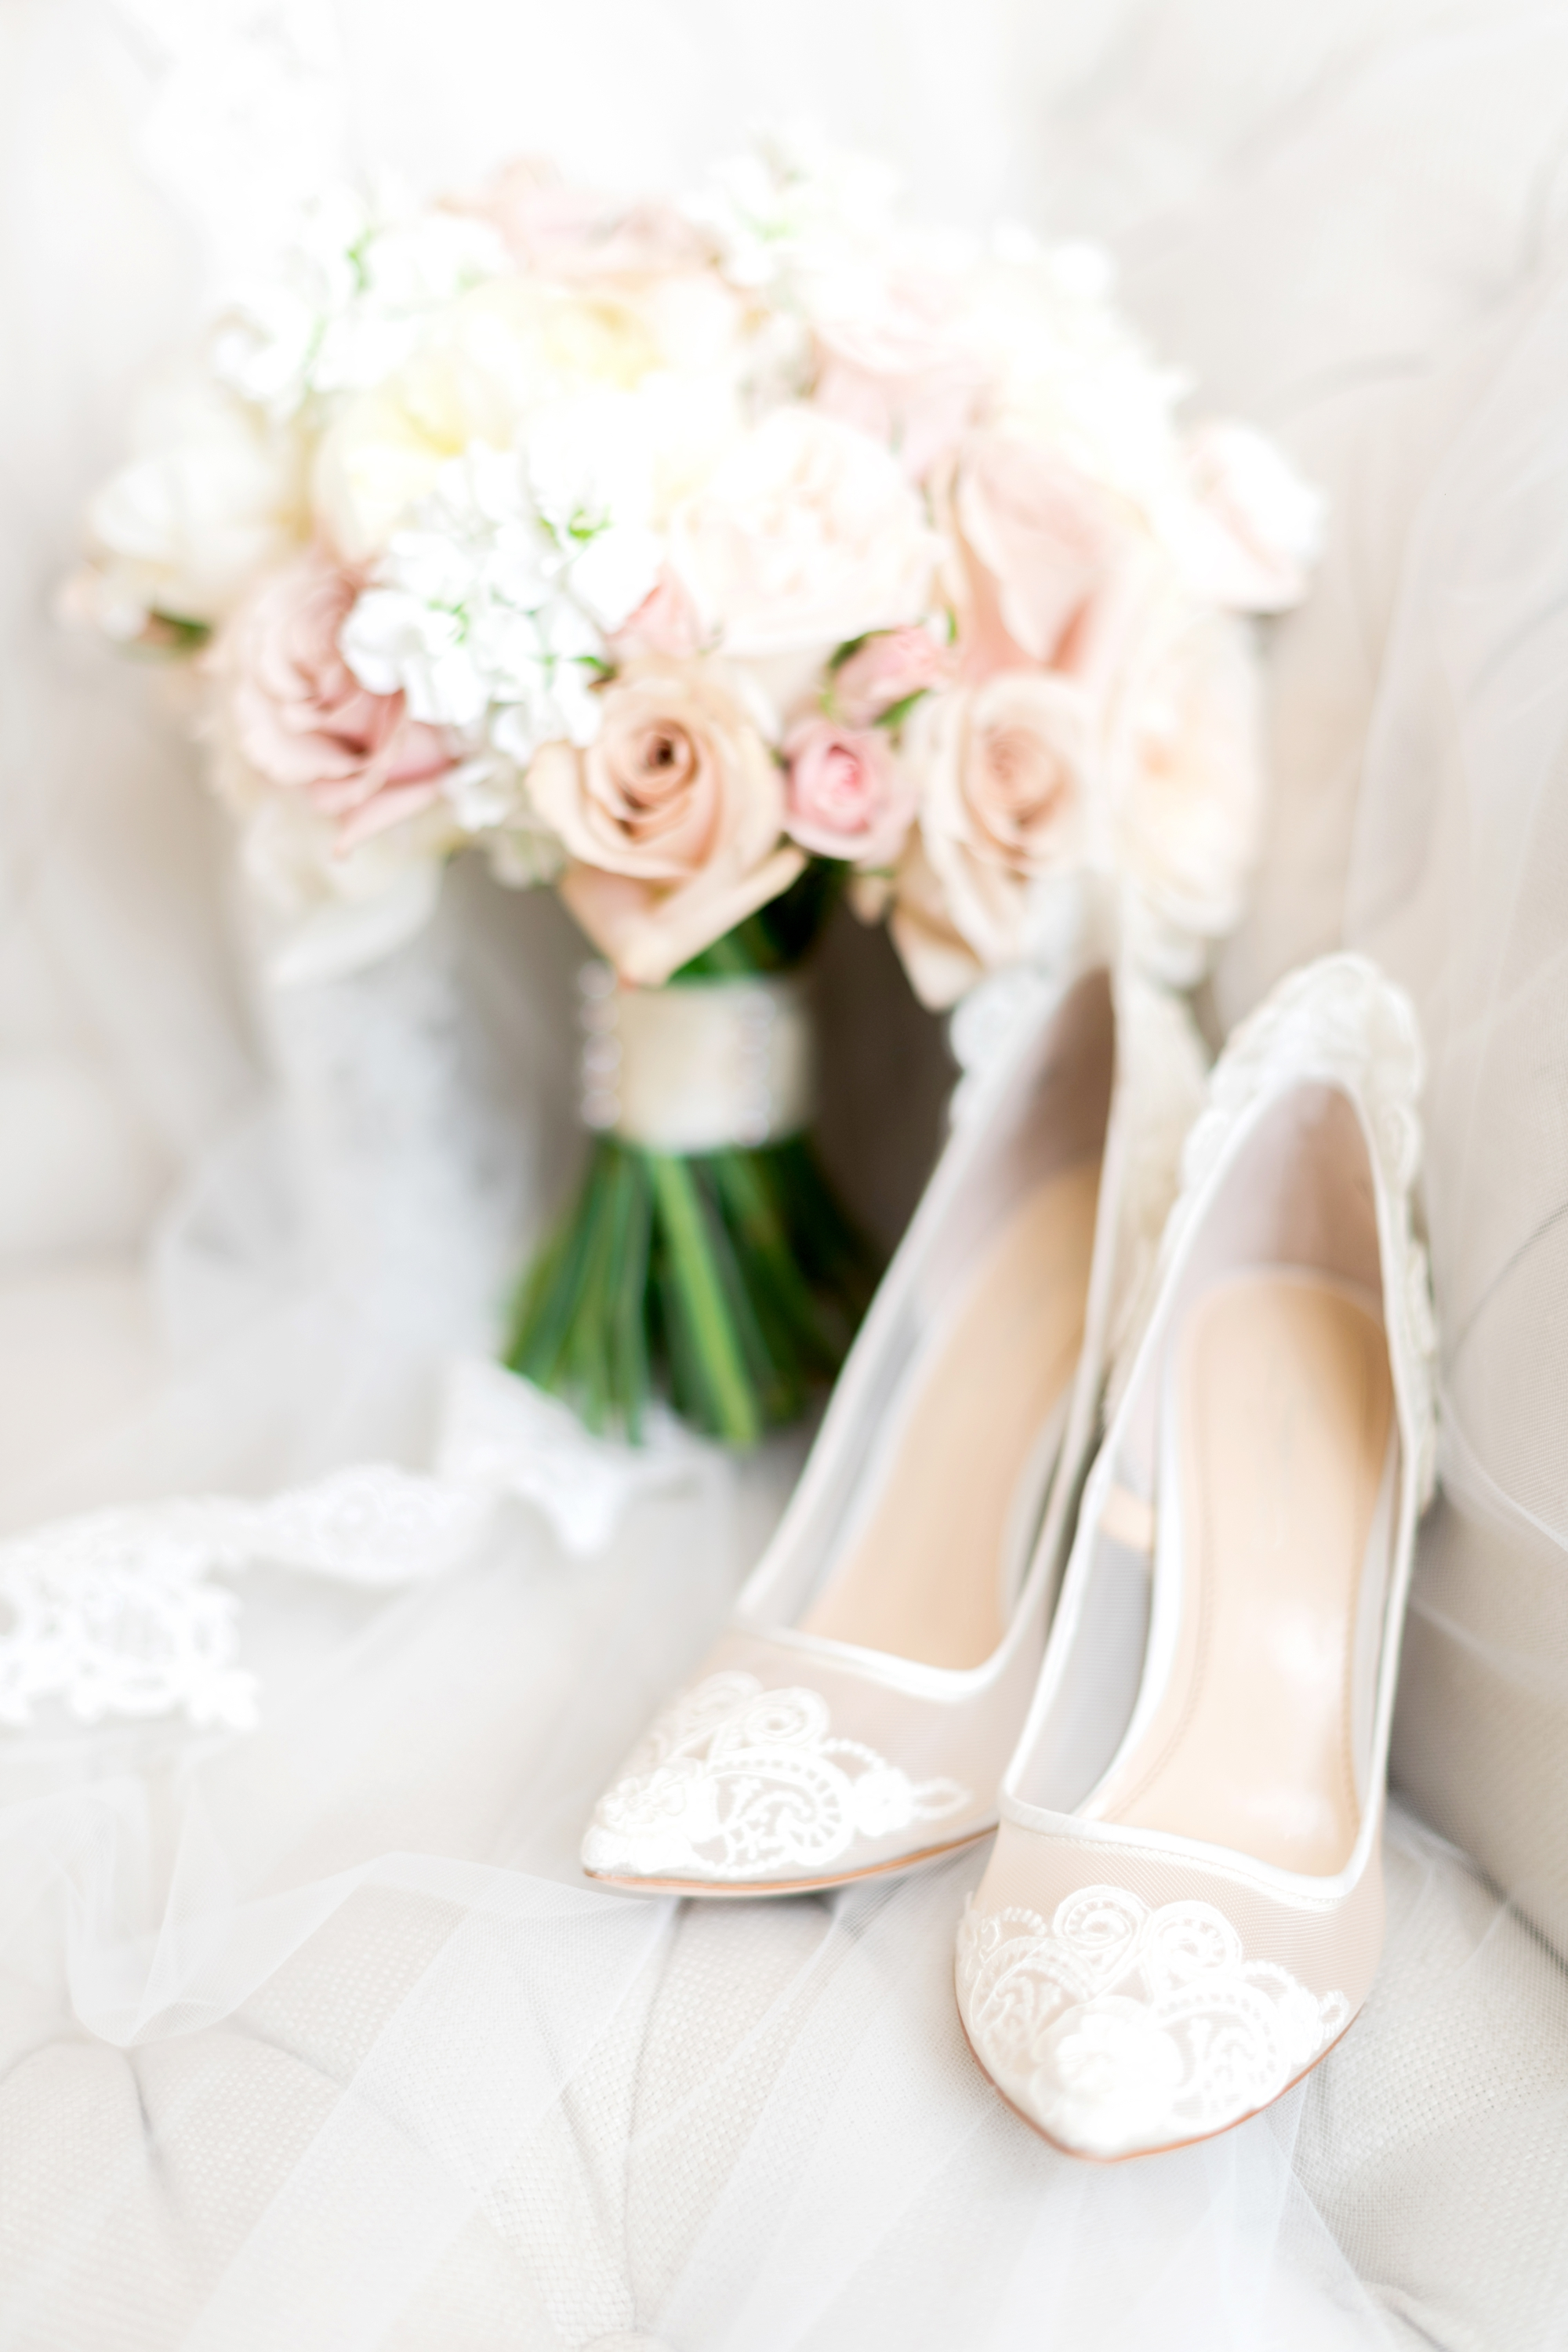 Vince Camuto Imagine Victoria Pumps Ivory